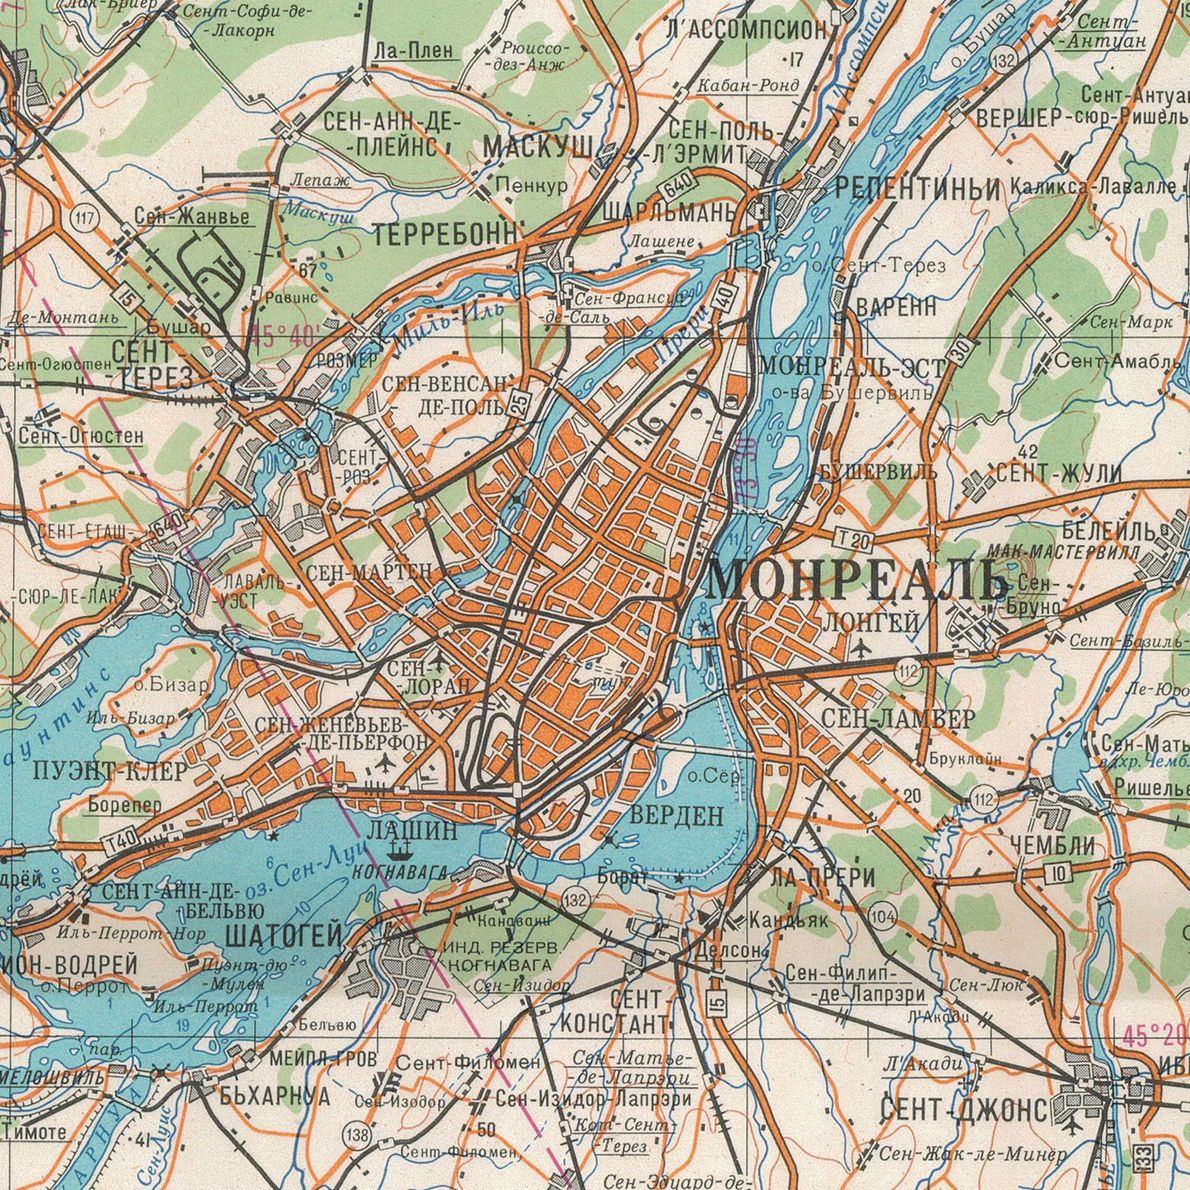 This small-scale map printed in 1981 shows the area around Montreal.